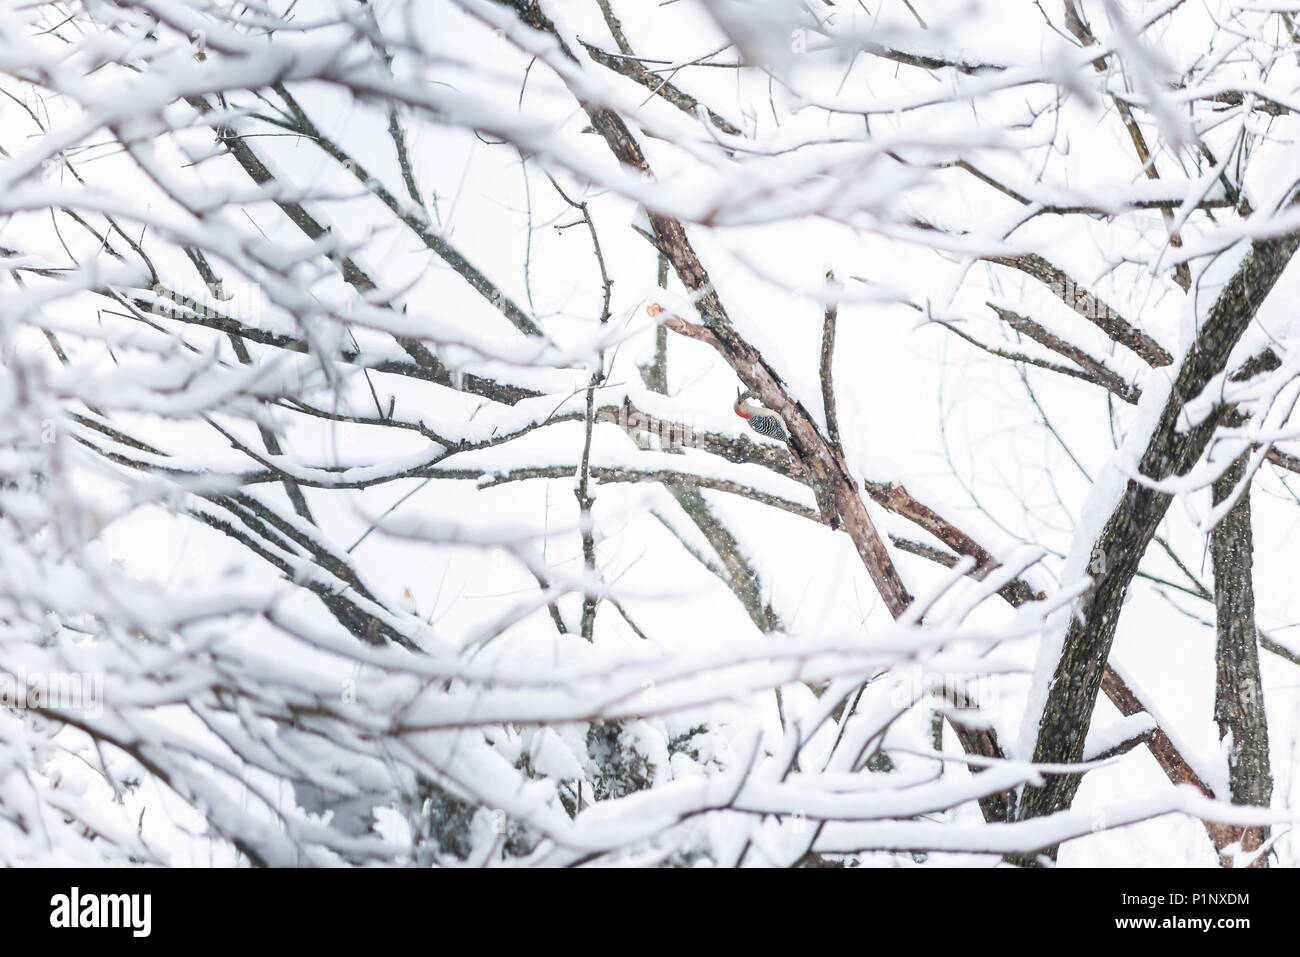 One red red-bellied bellied woodpecker bird perched on tree trunk during heavy winter spring snow colorful in Virginia, snow flakes falling - Stock Image